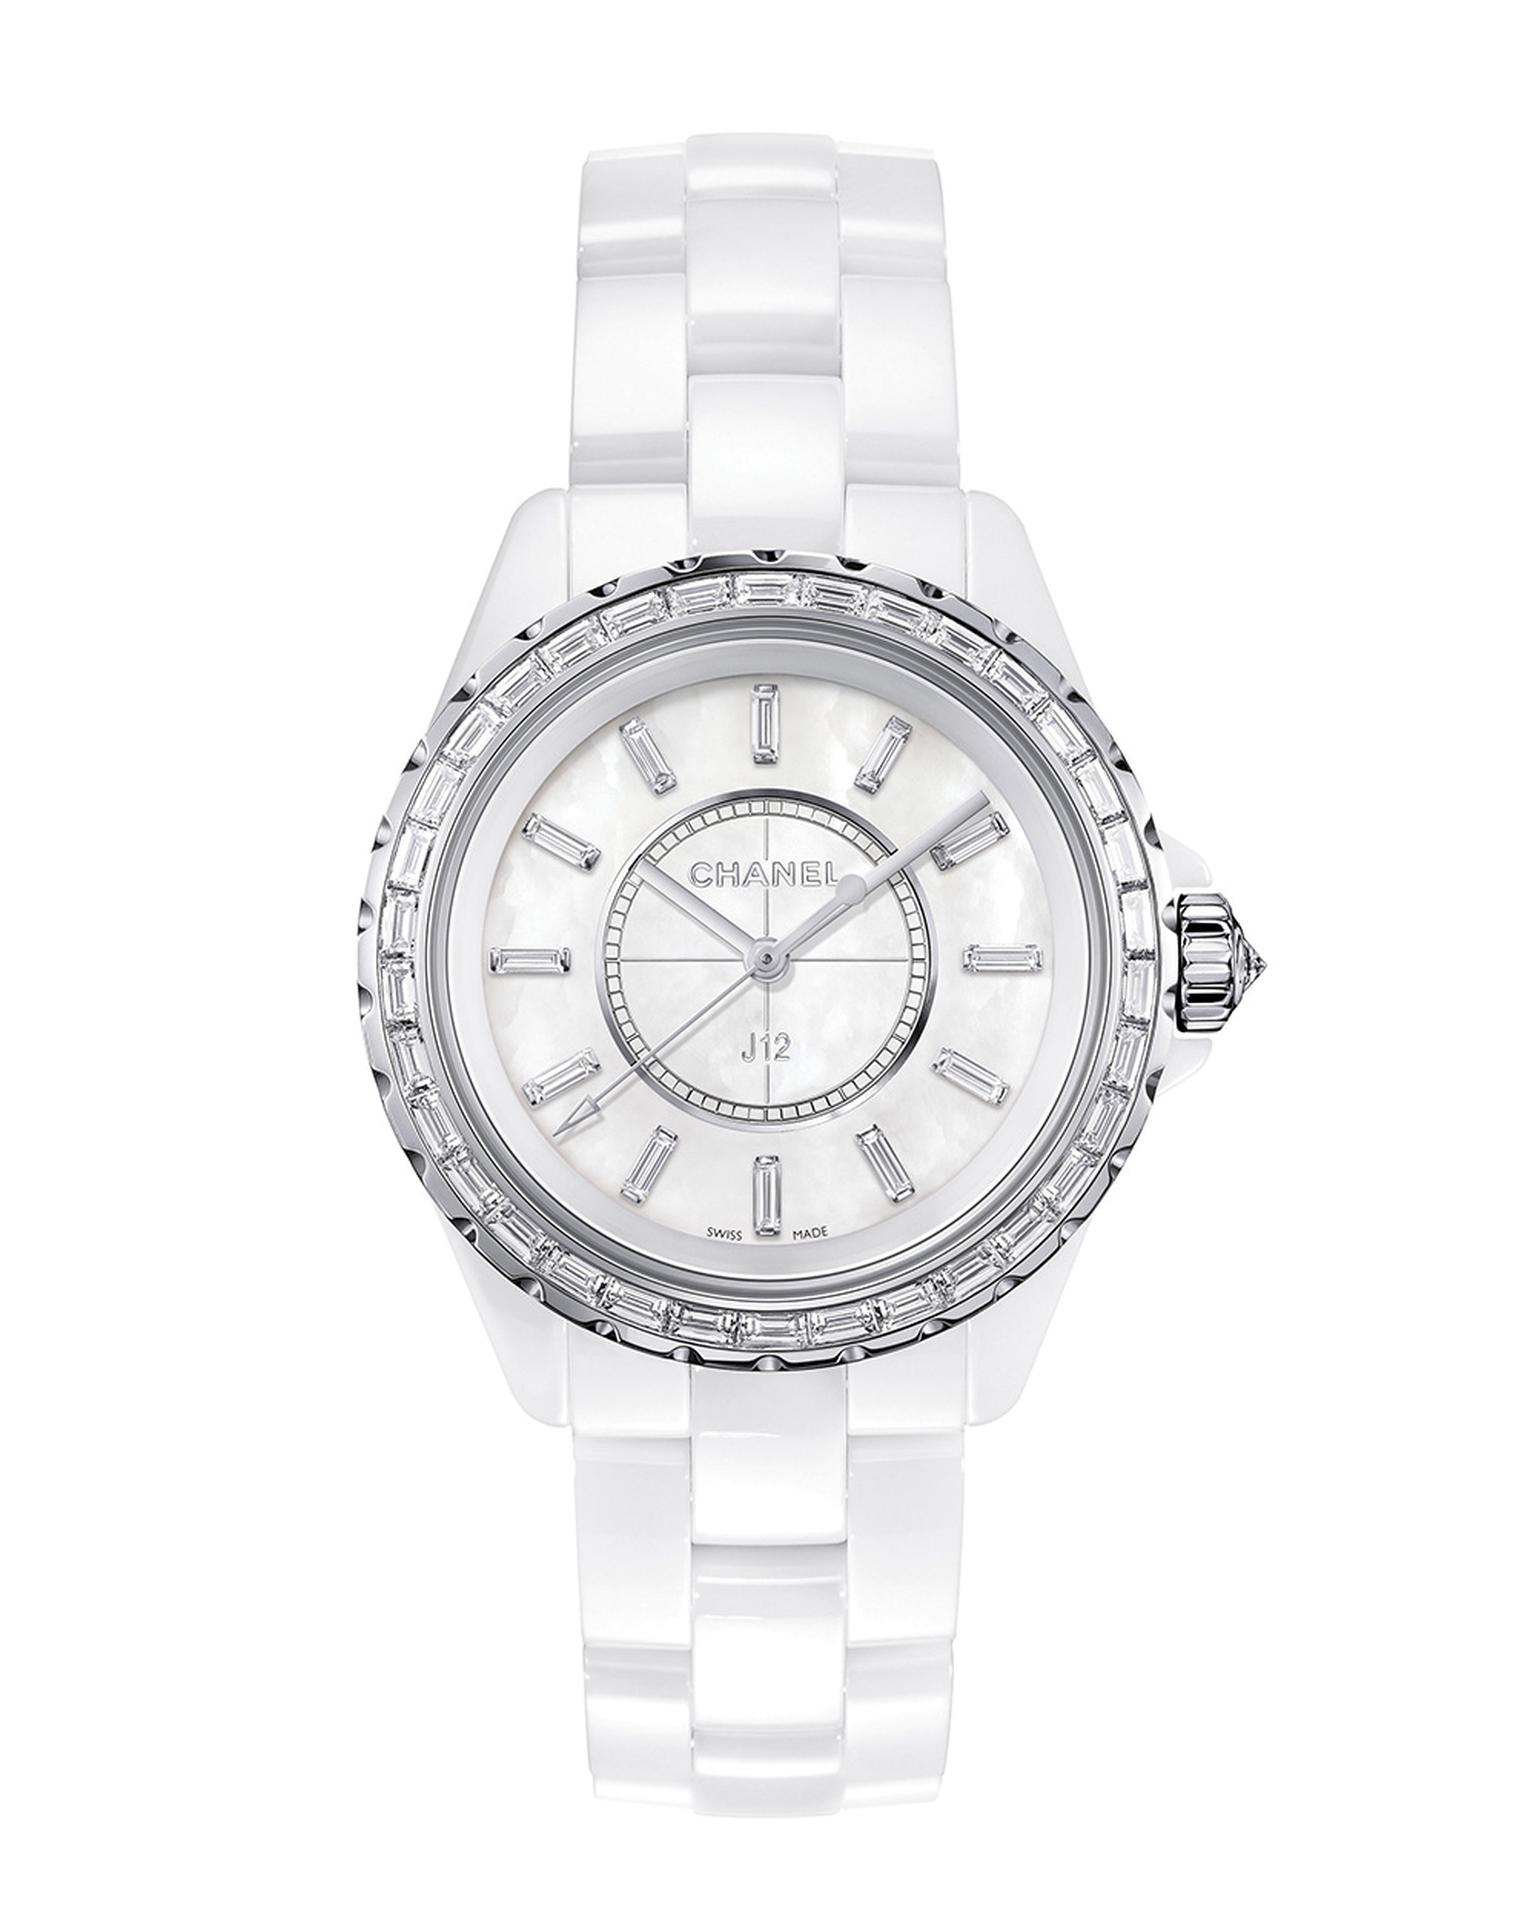 J12-White-Baguette-Diamond-Bezel-33MM-FB-BASELWORLD.jpg